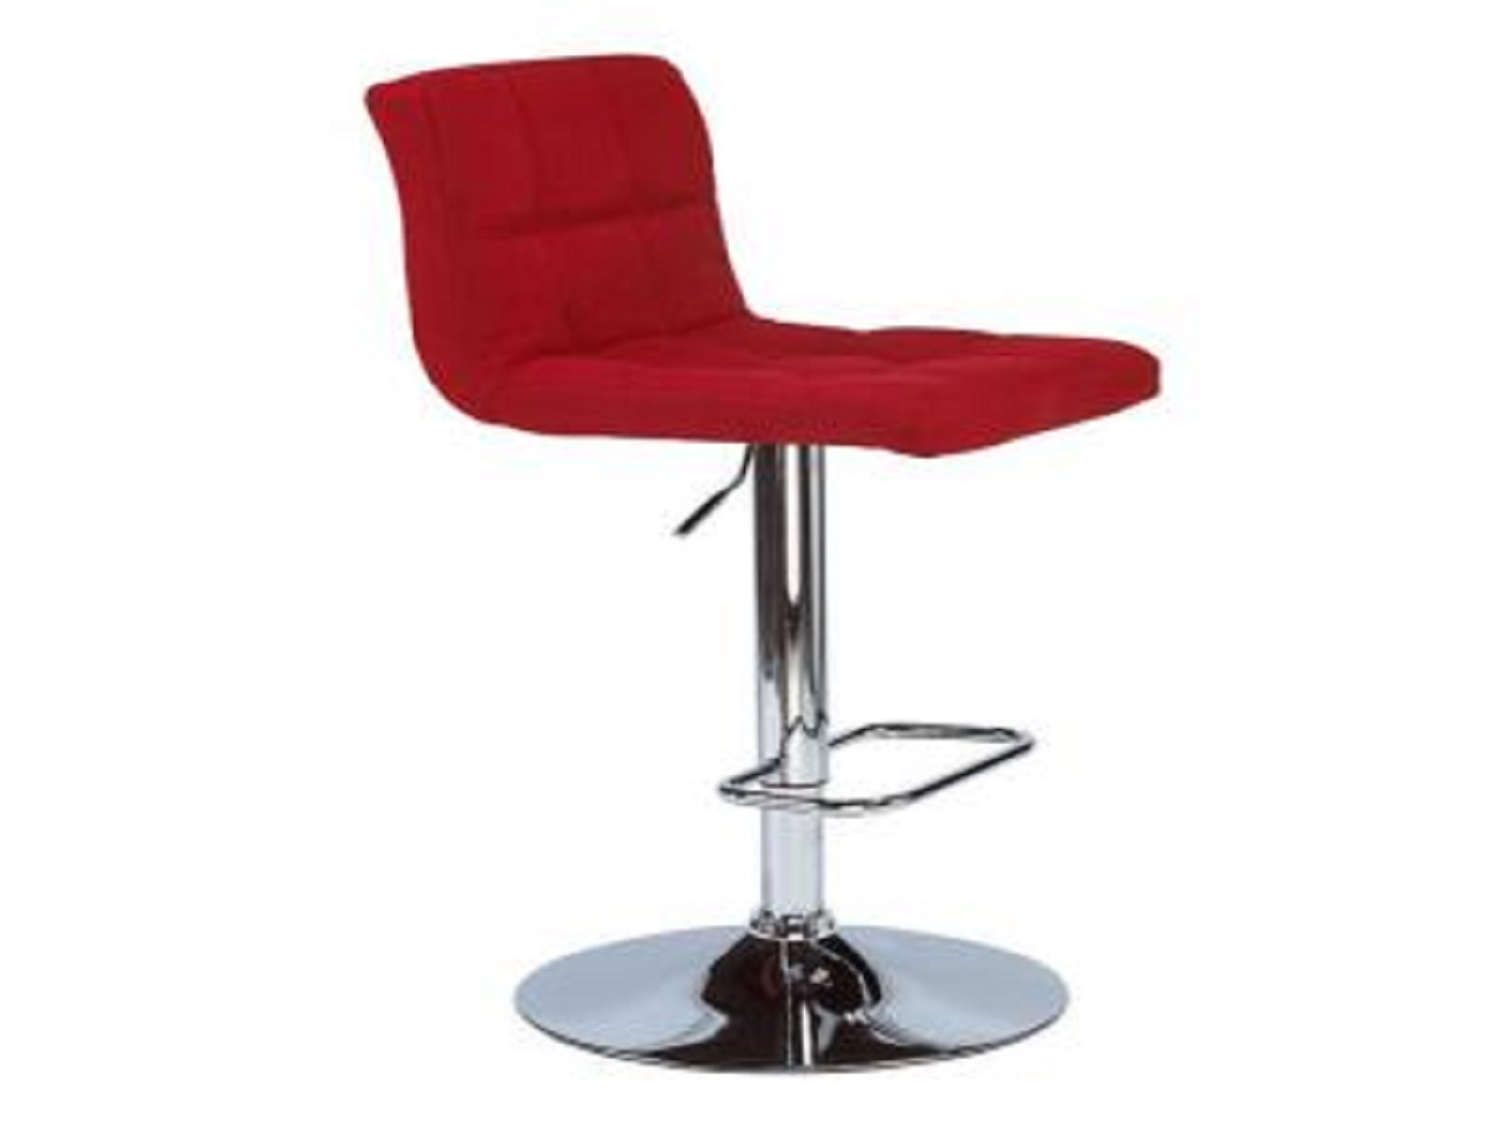 Selena Red Fabric Adjustable Stool, GY-2494, Bar Stools by Midha Furniture to Brampton, Mississauga, Etobicoke, Toronto, Scraborough, Caledon, Oakville, Markham, Ajax, Pickering, Oshawa, Richmondhill, Kitchener, Hamilton and GTA area